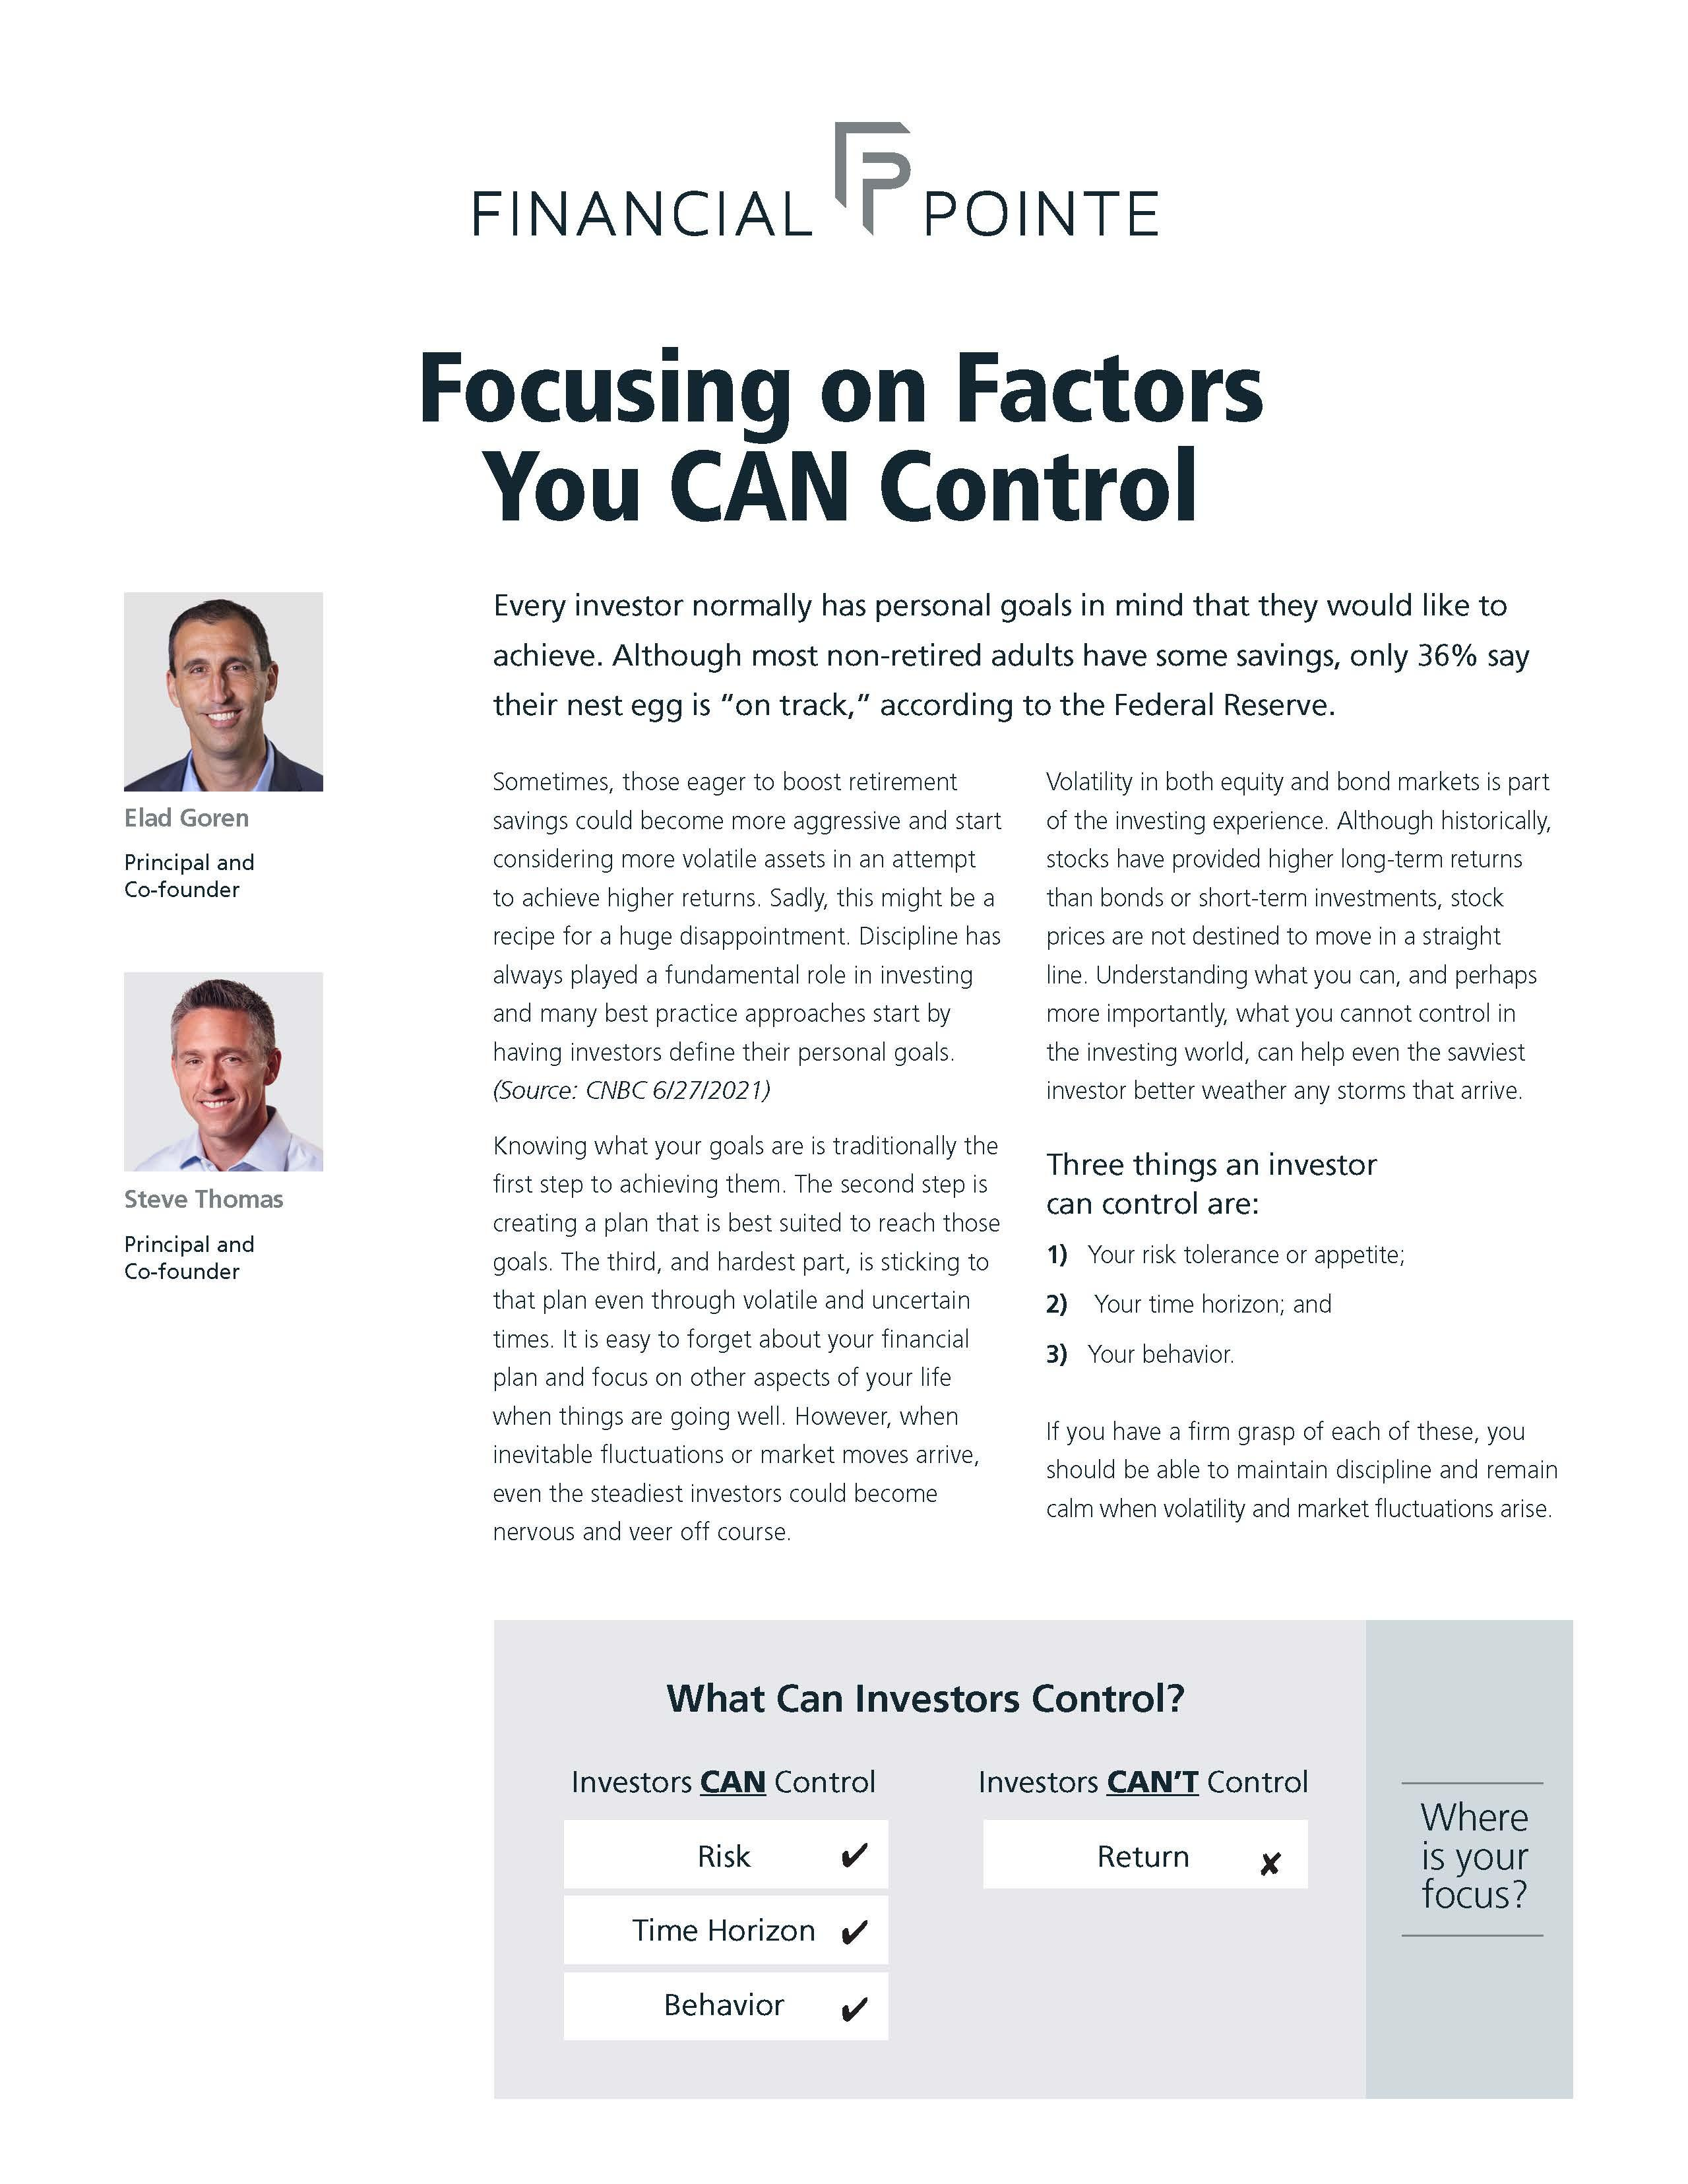 Focusing on Factors You CAN Control Thumbnail